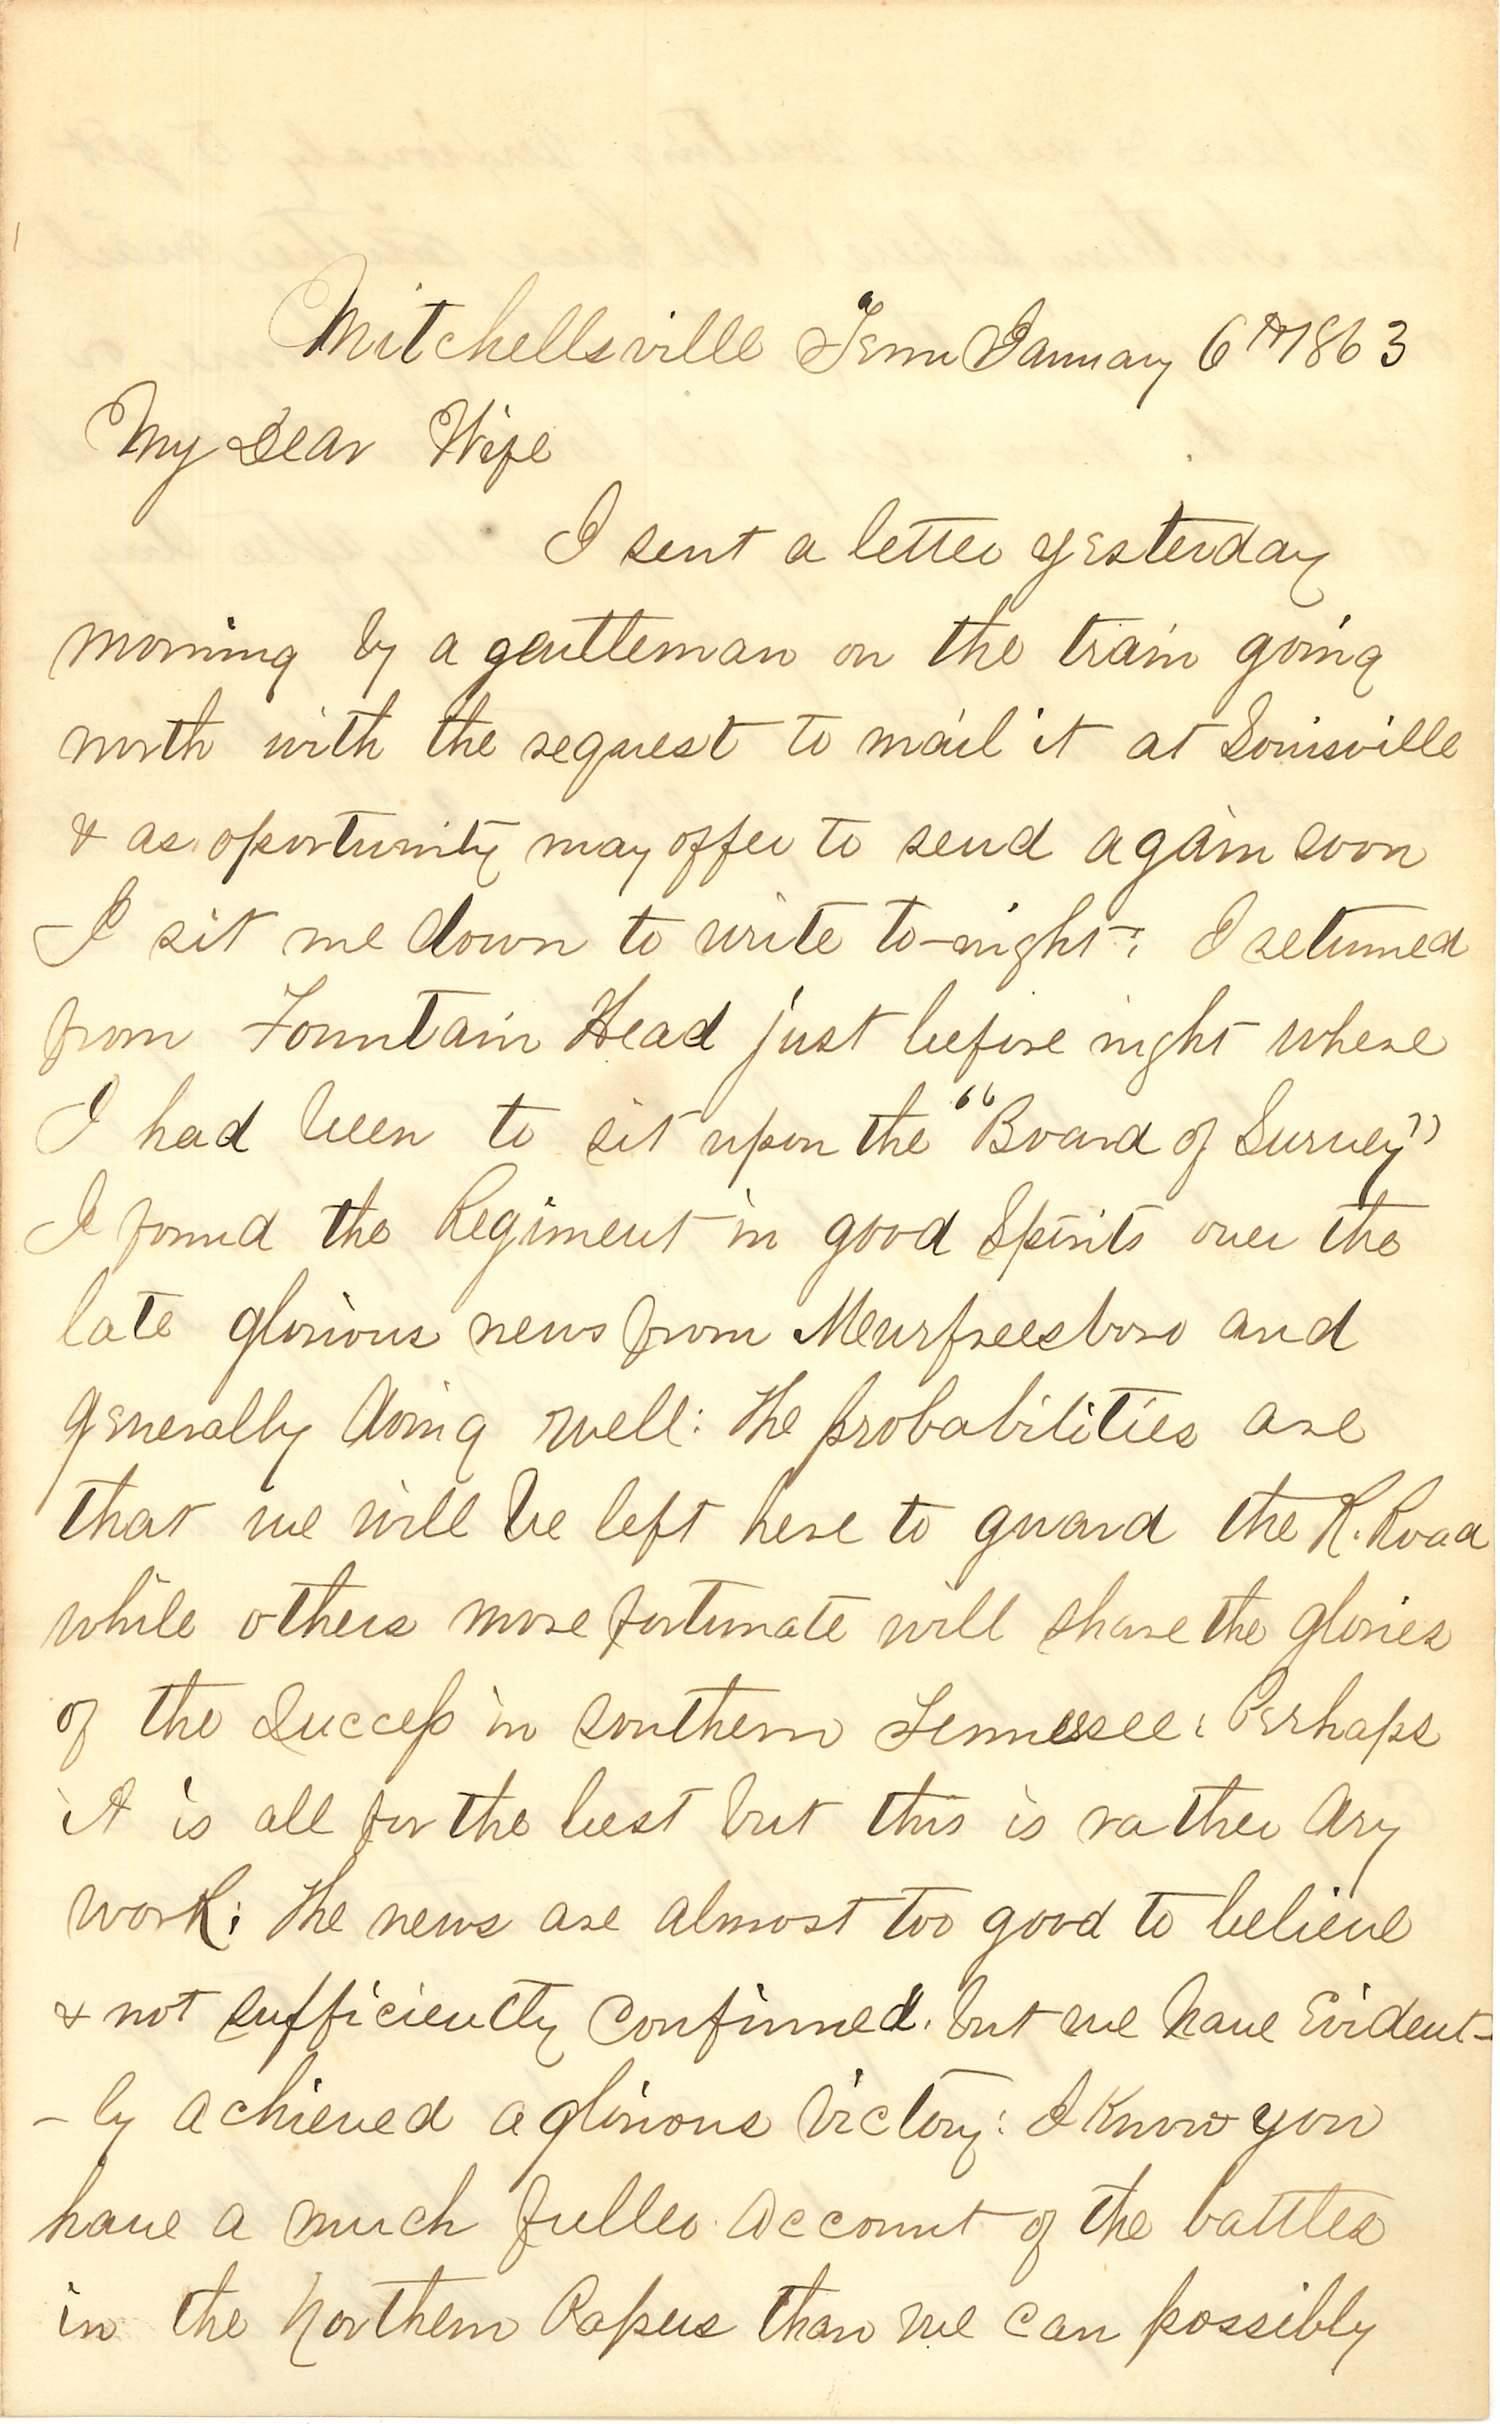 Joseph Culver Letter, January 6, 1863, Page 1